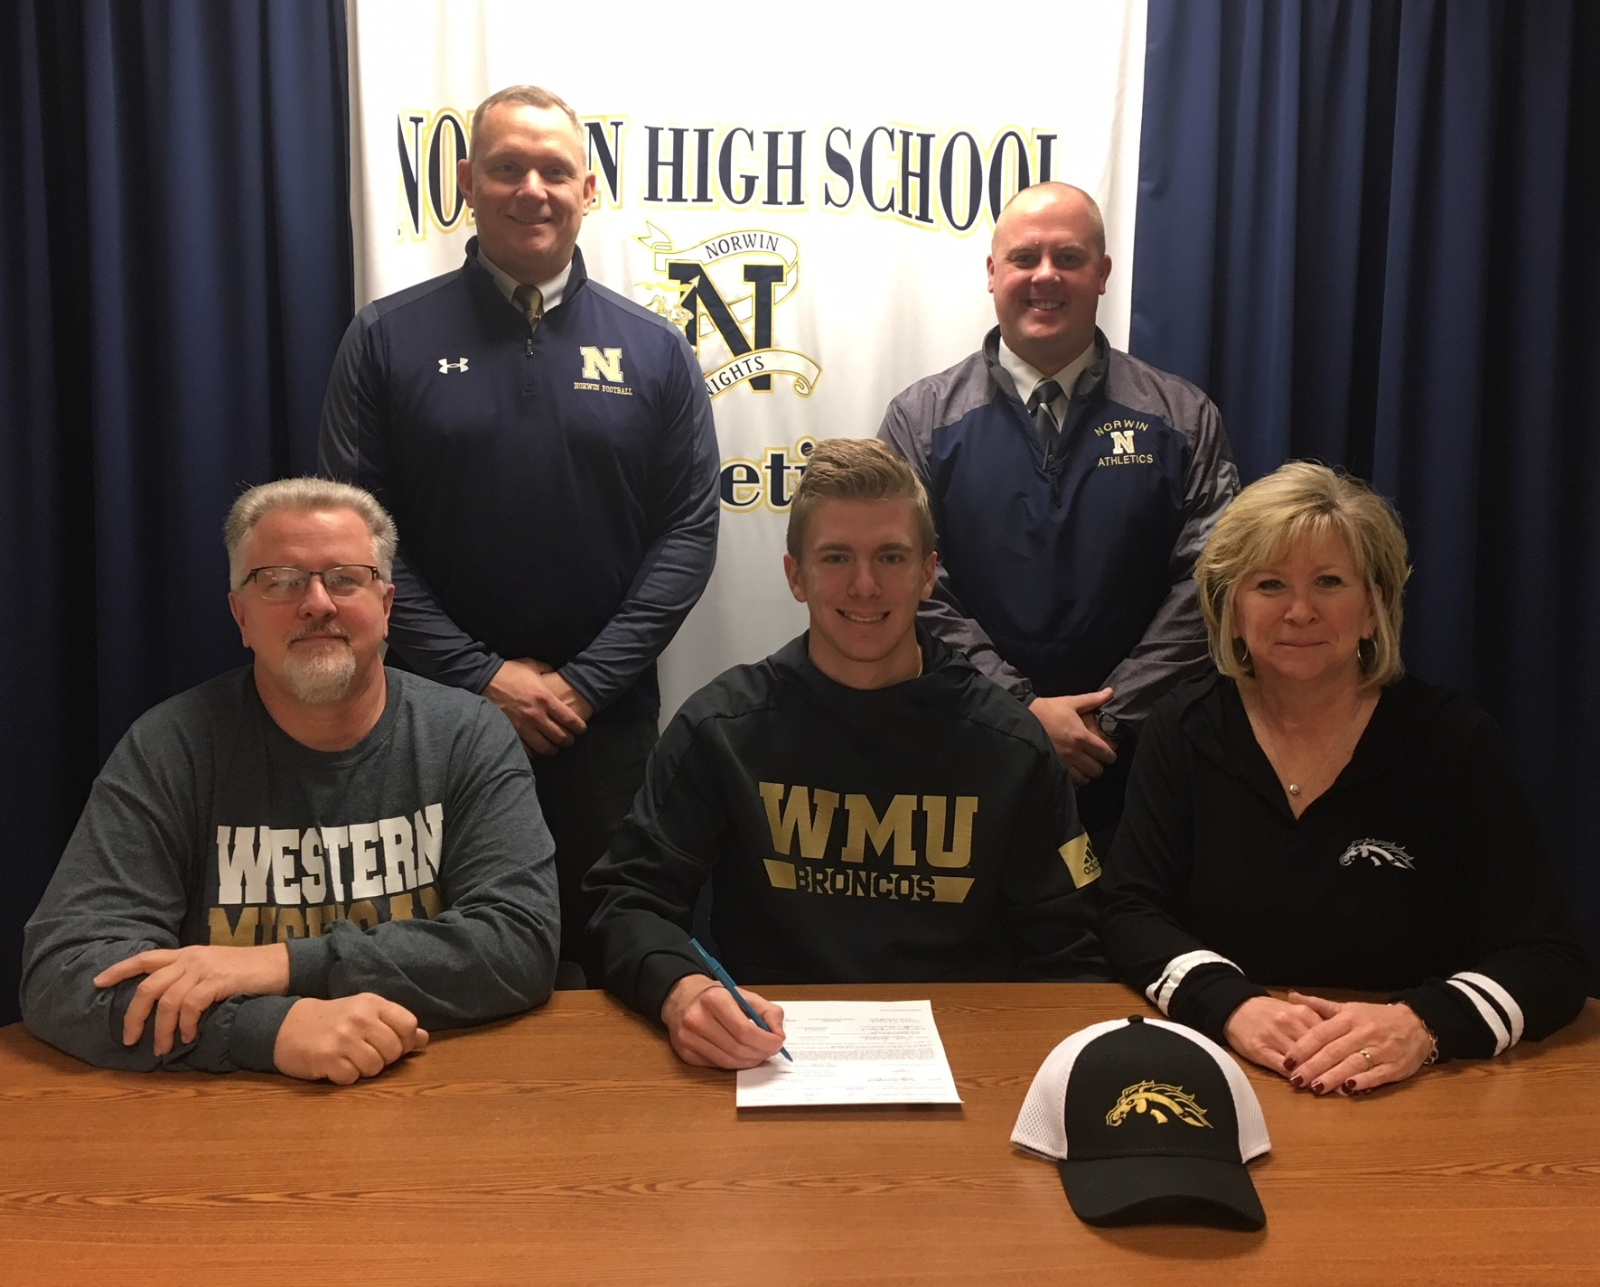 Salopek Makes it Official – Western Michigan it is!